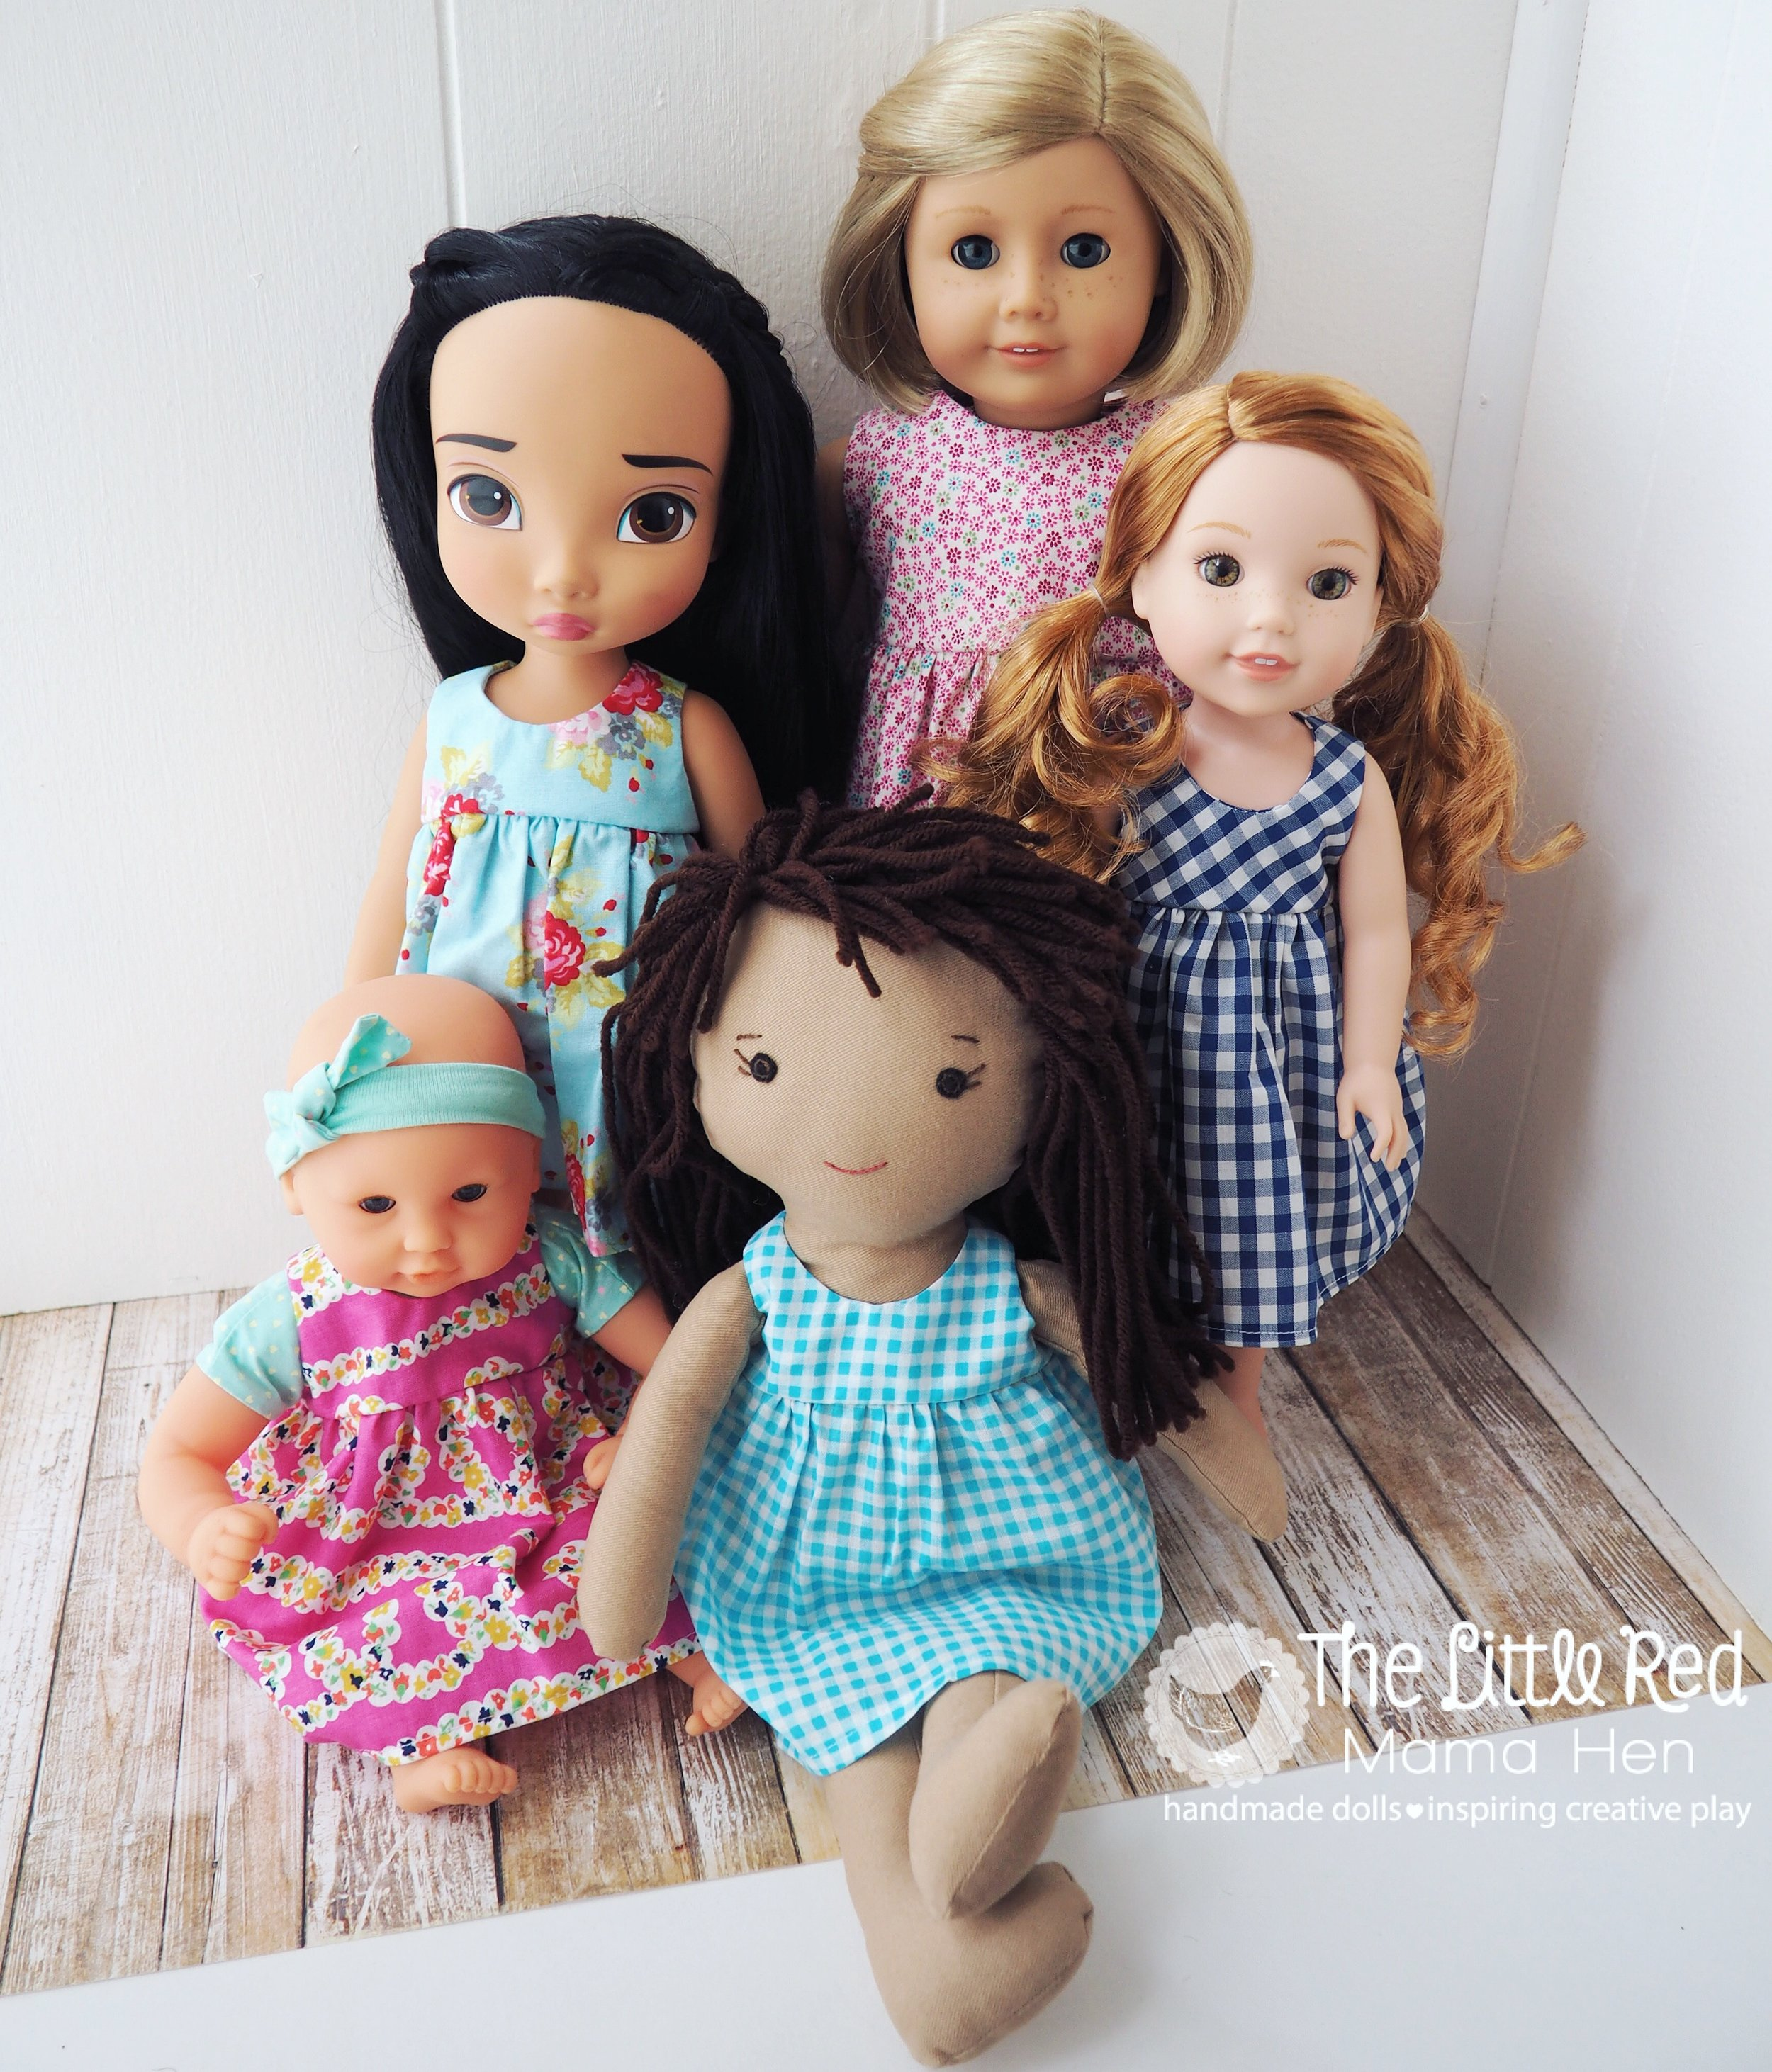 For doll clothes in all sizes, dress up, and accessories to inspire creative play... shop our Etsy Shop!  -